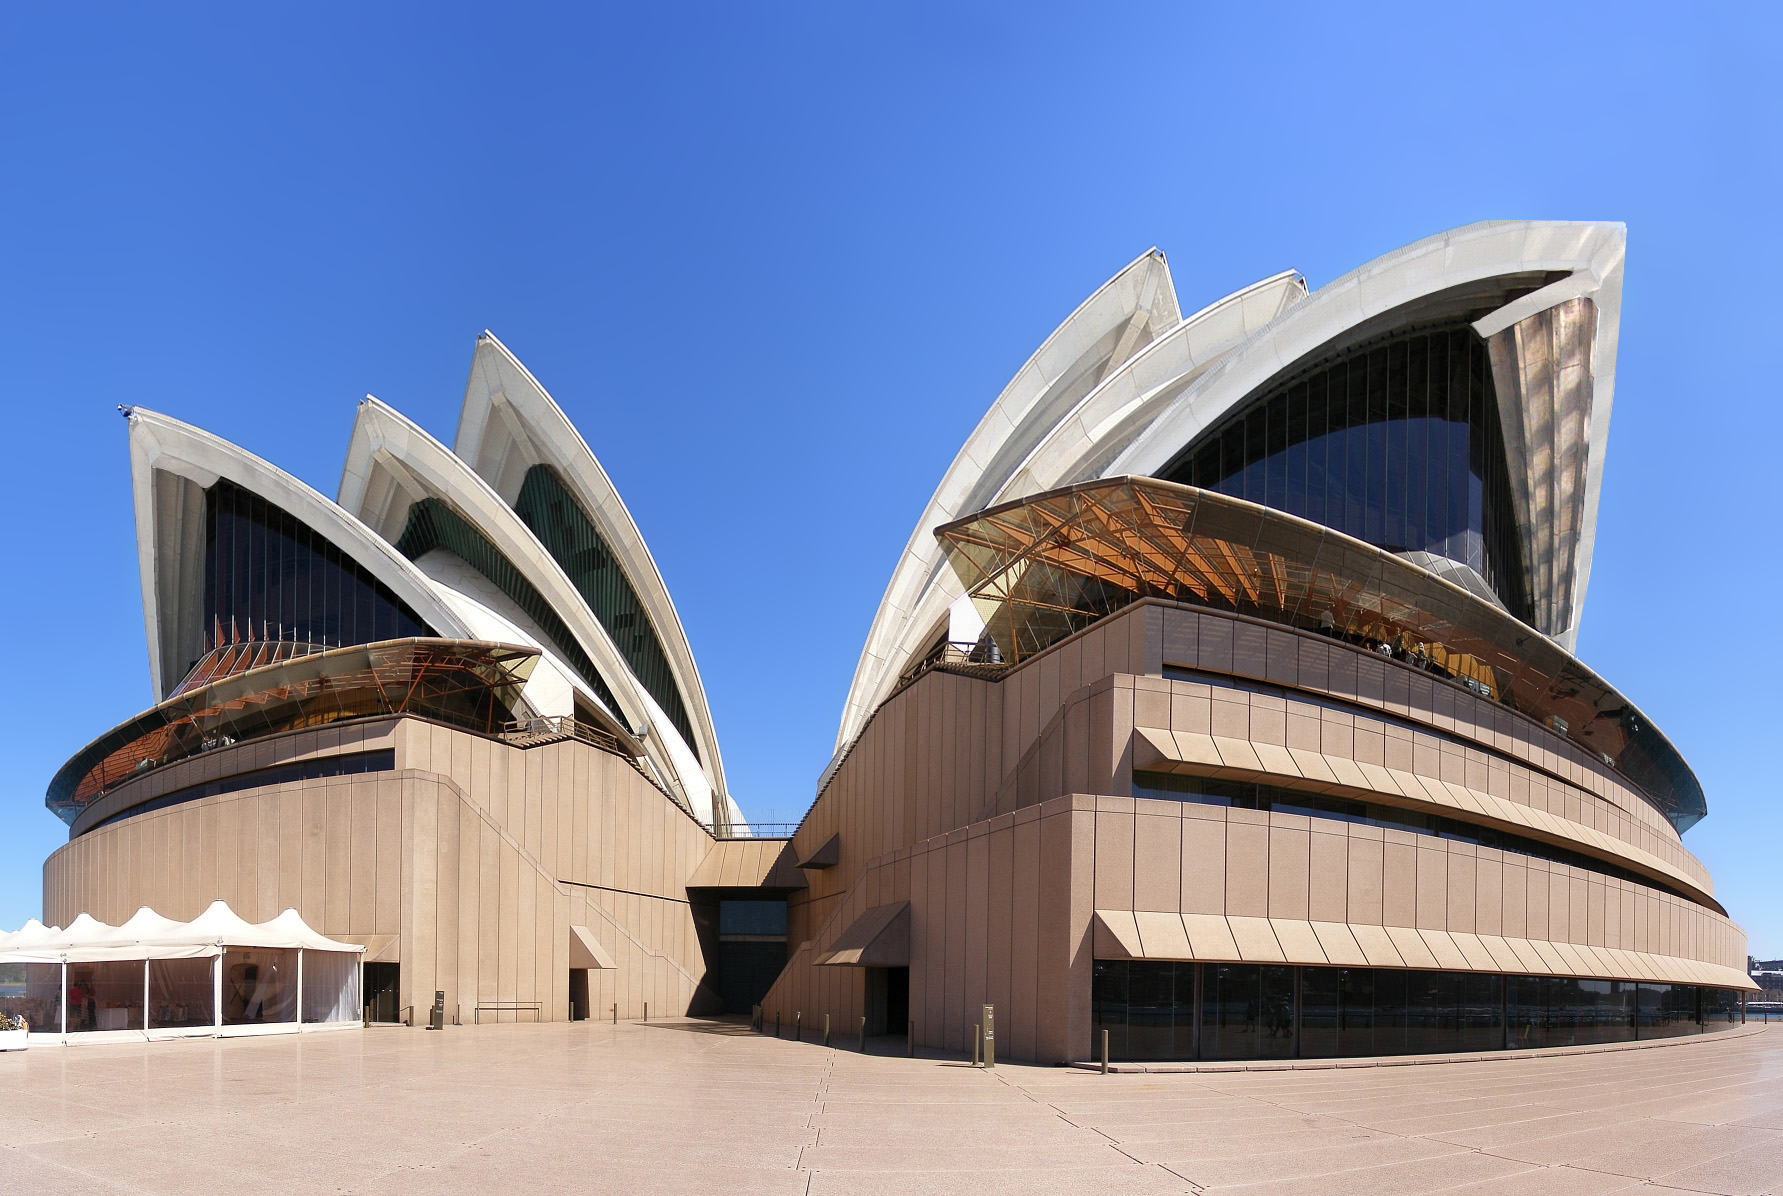 Sydney opera house australia gets ready for Sydney opera housse